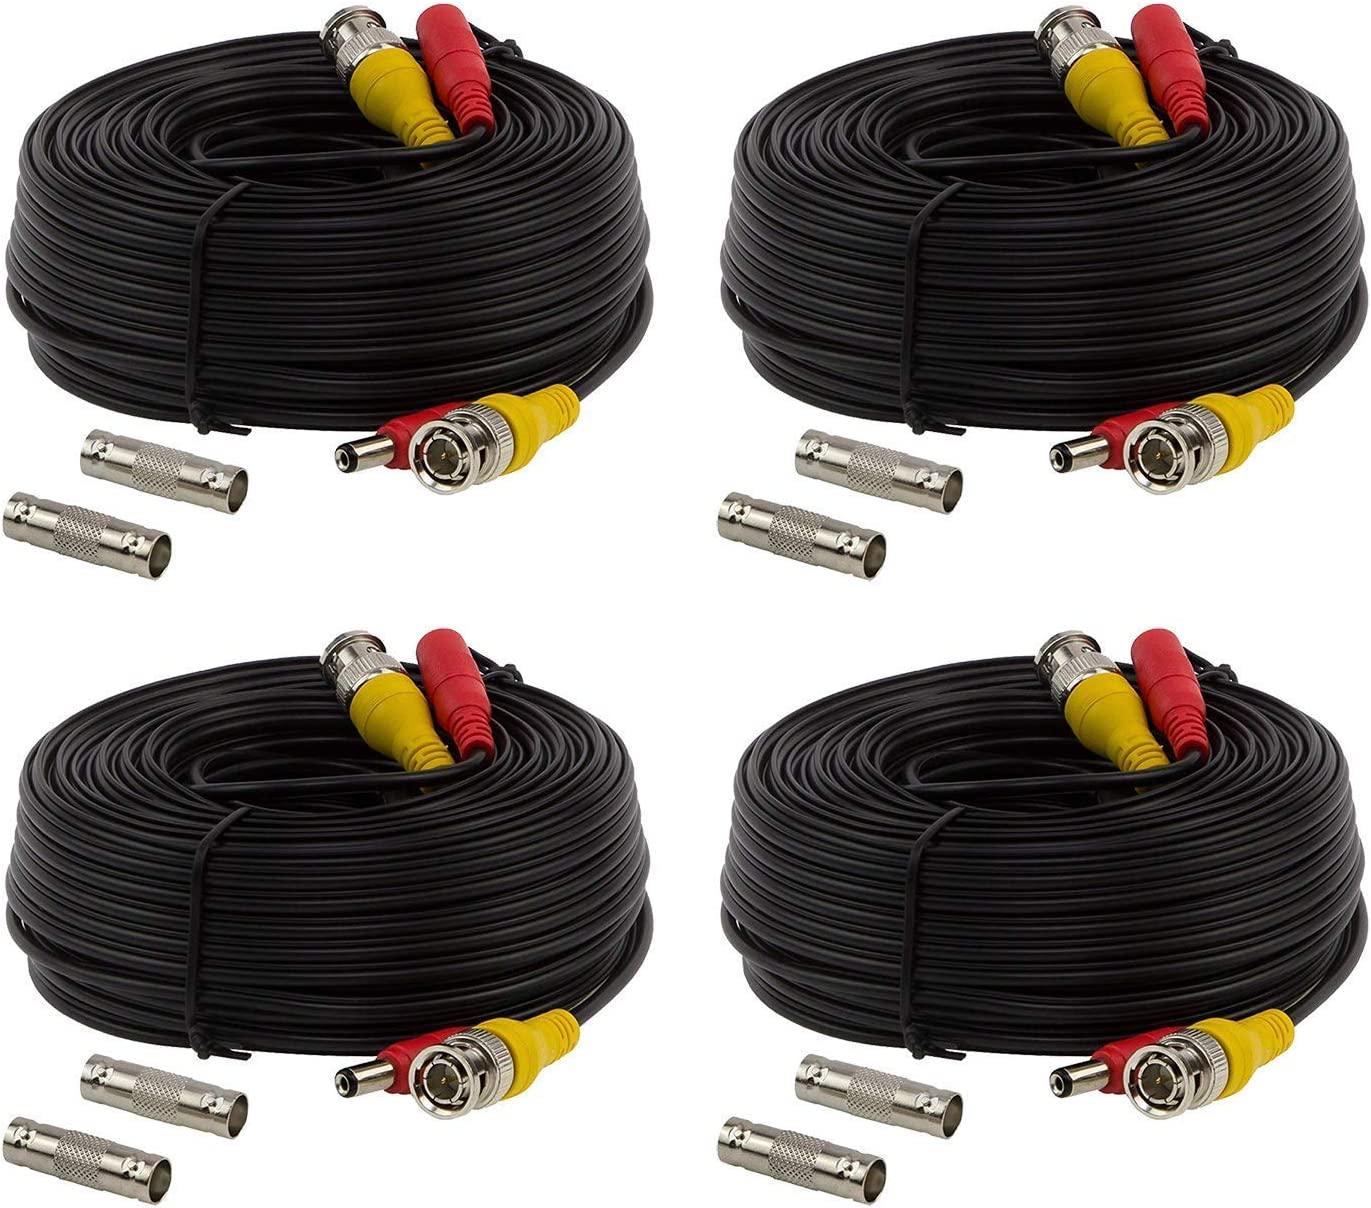 100ft BNC Video Power Cable, BNC Extension Wire Cord with Connectors All in one premade Siamese Cable for Surveillance CCTV Security Camera Video System – Black 4 Packs by InstallerCCTV